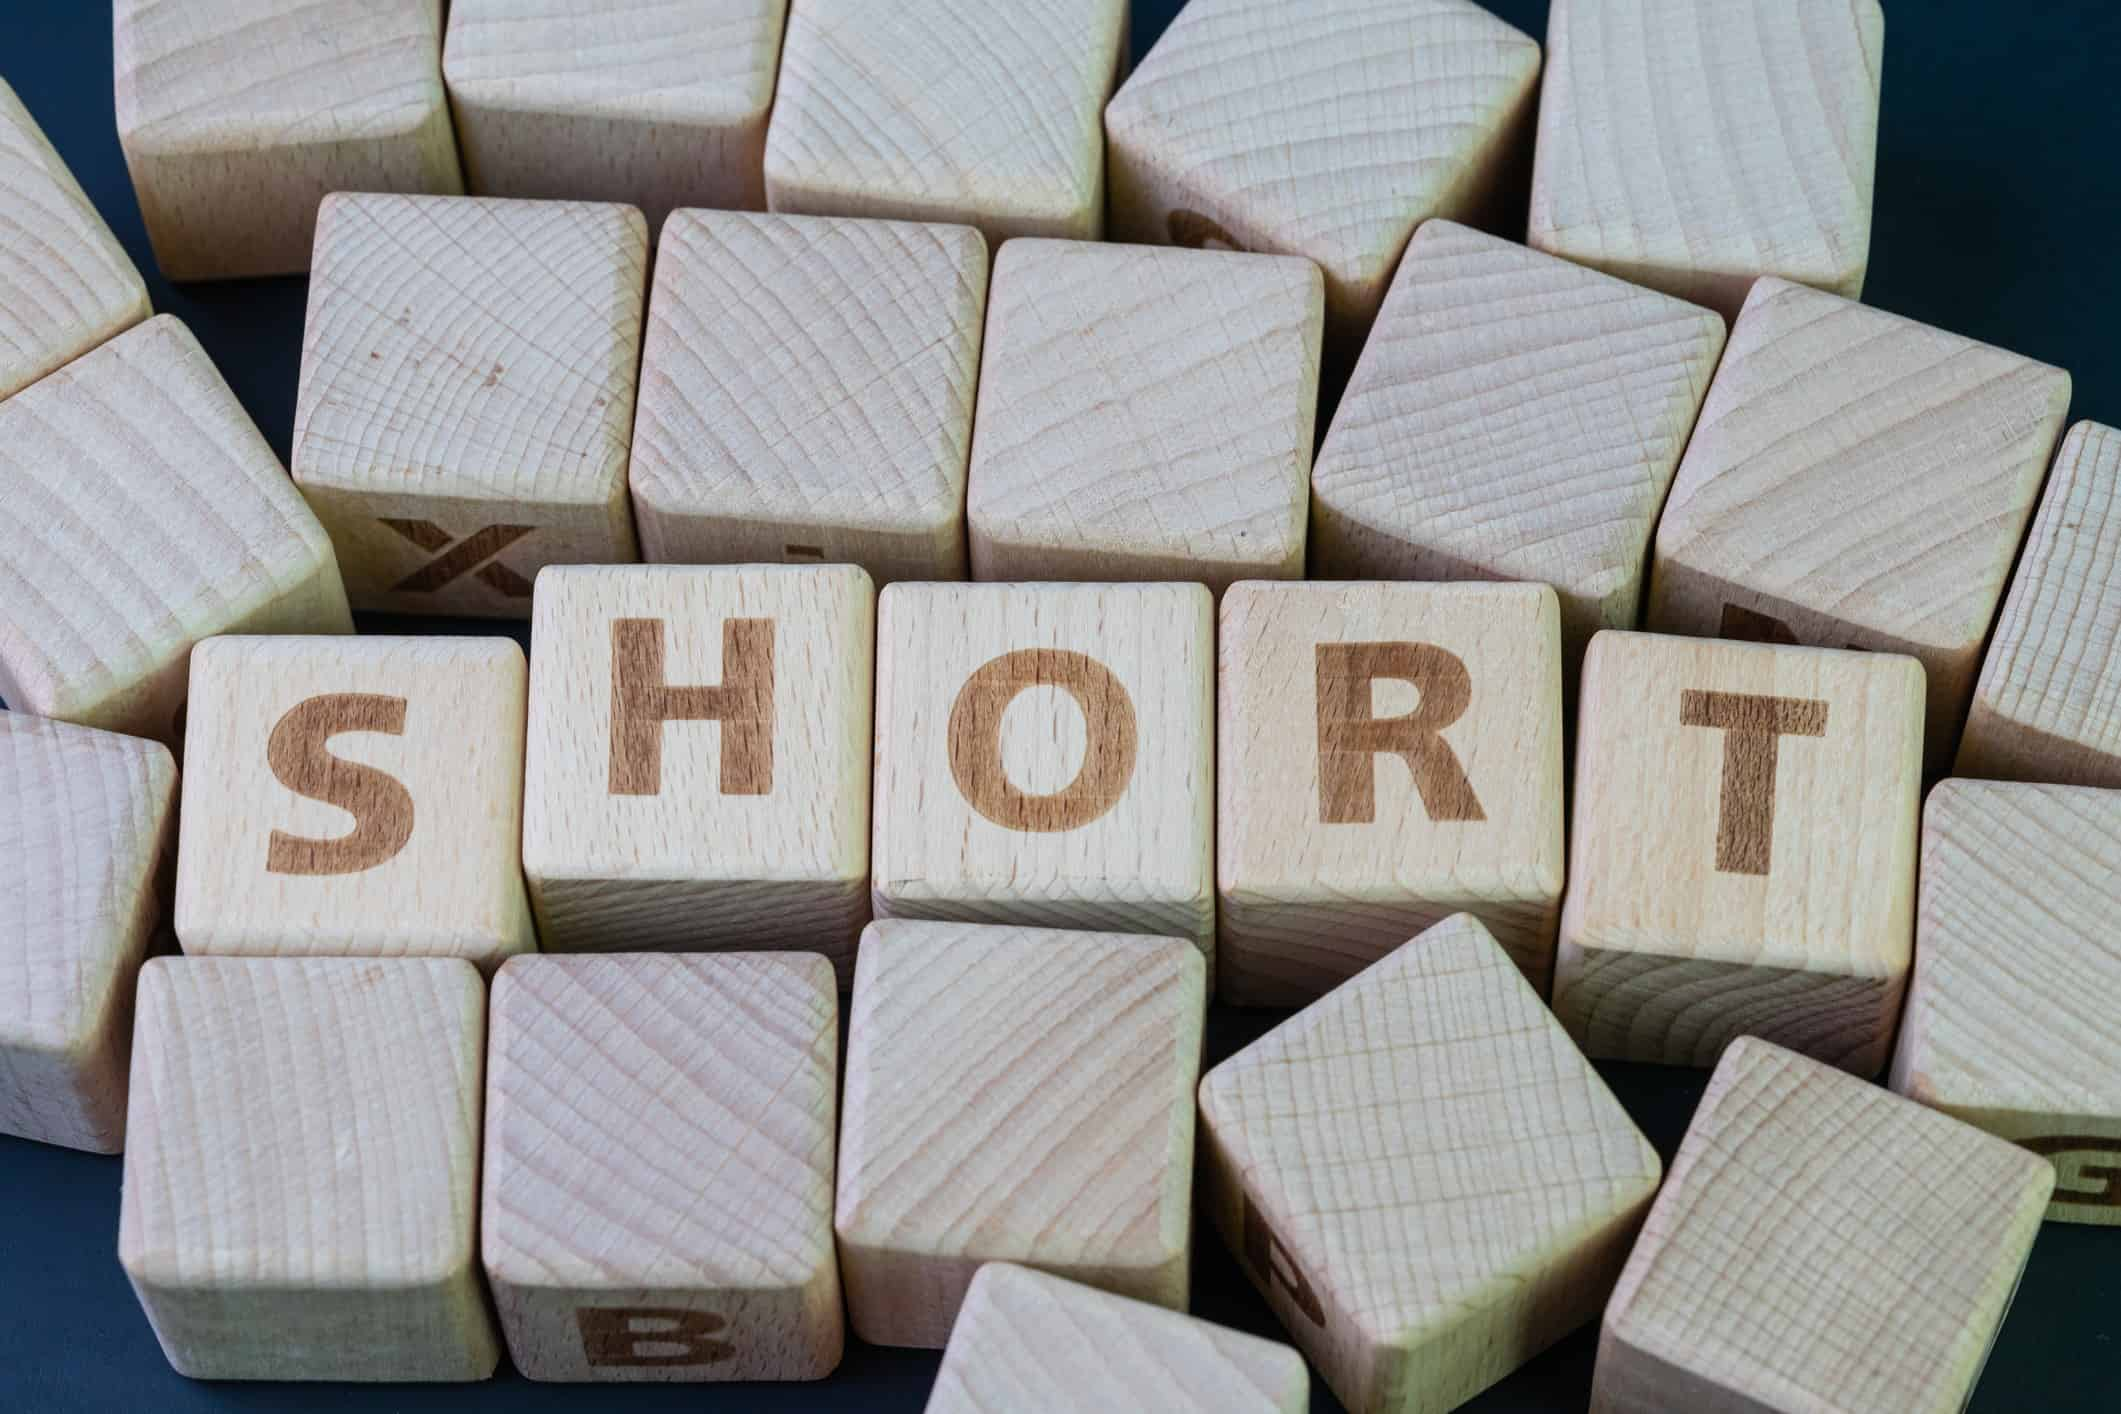 most shorted shares